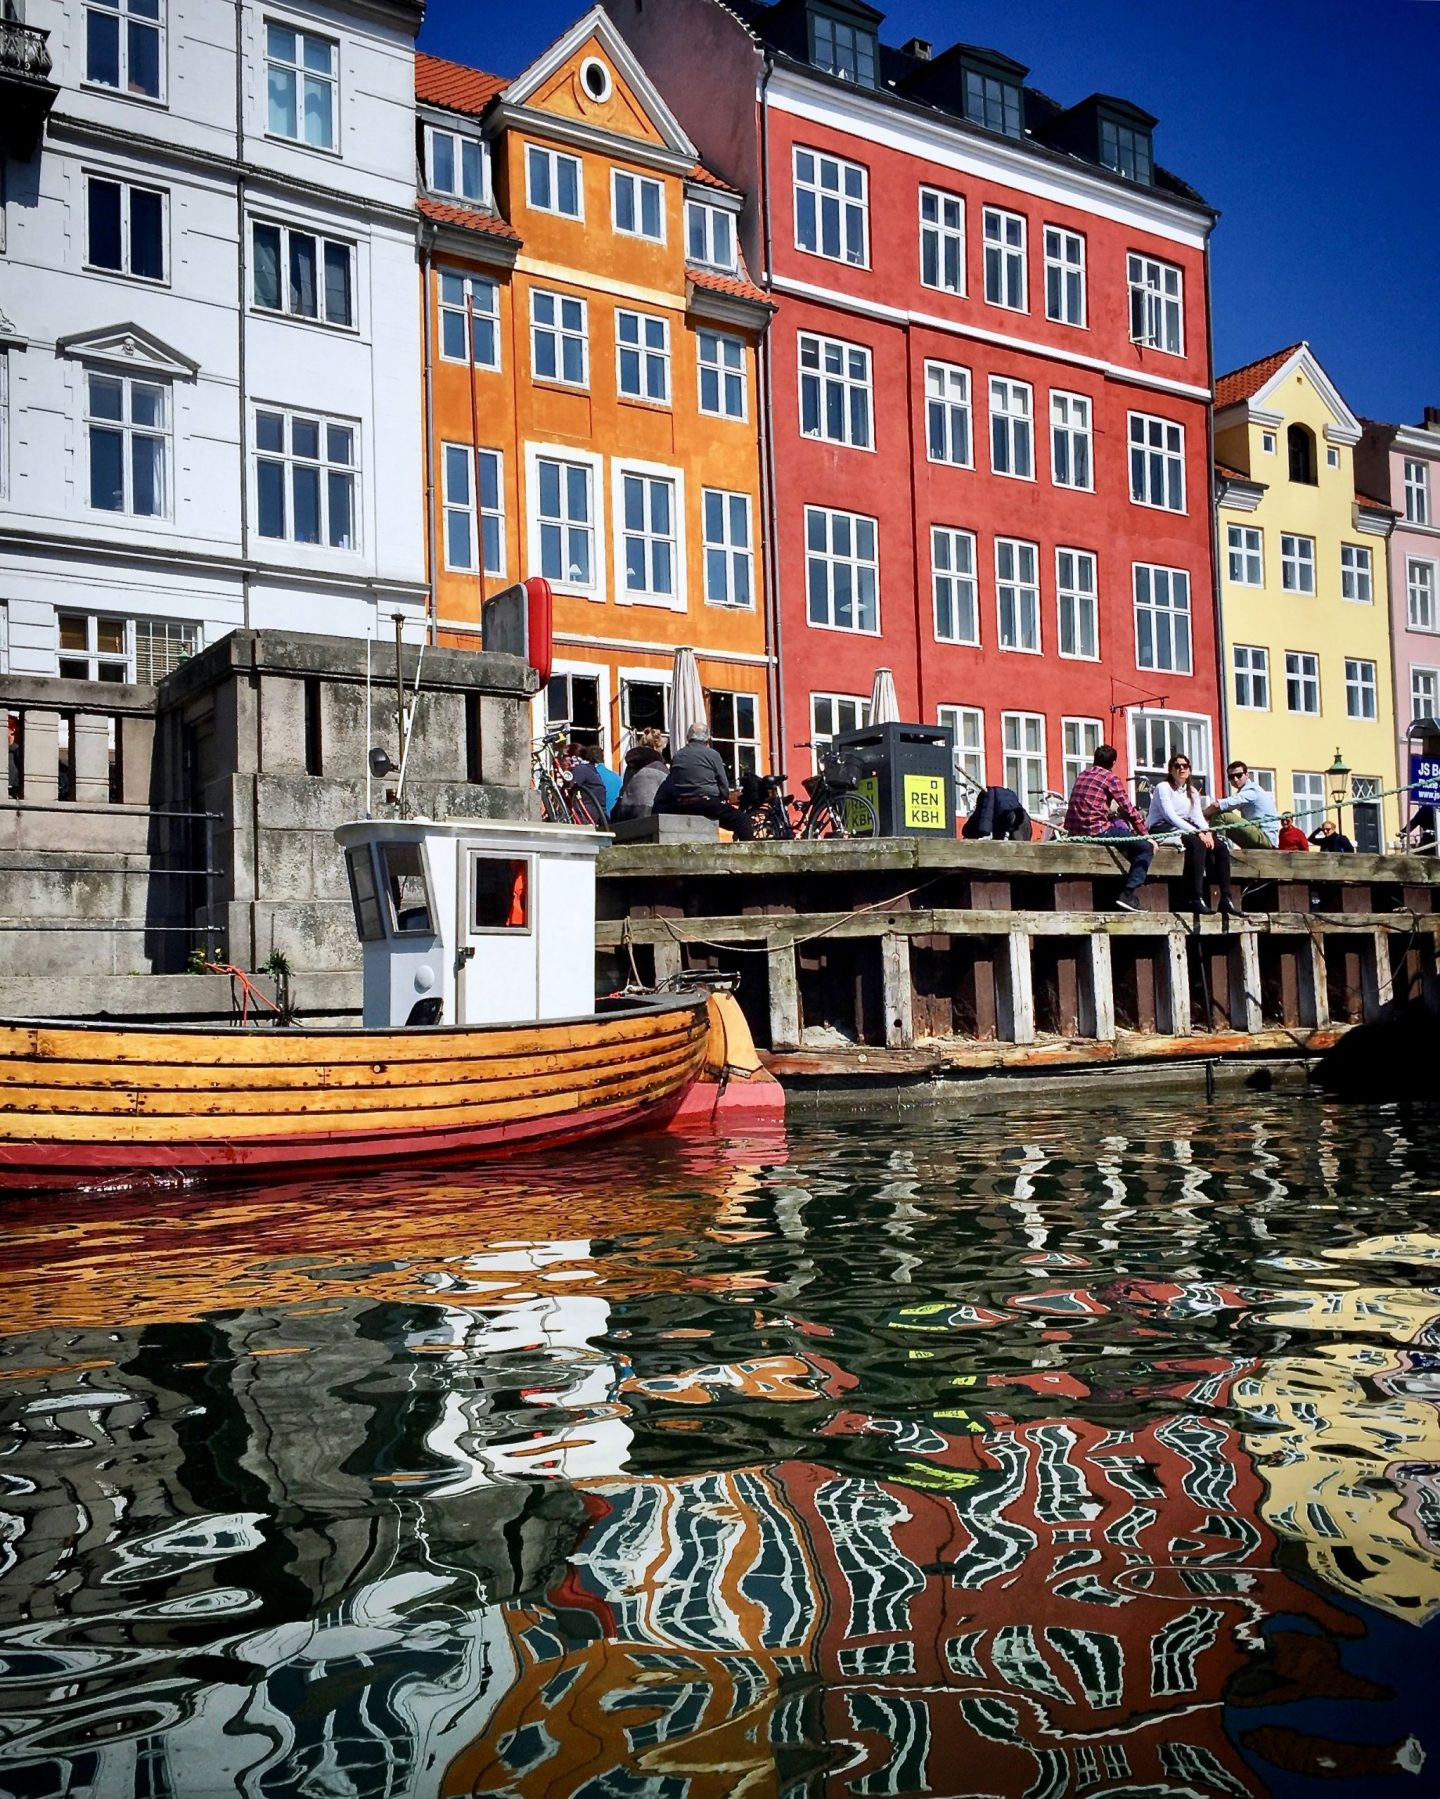 A bloggers guide to Copenhagen featuring Hello Peagreen, Copenhagen, Nyhavn, travel tips, copenhagen canals, hello peagreen, travel blogger